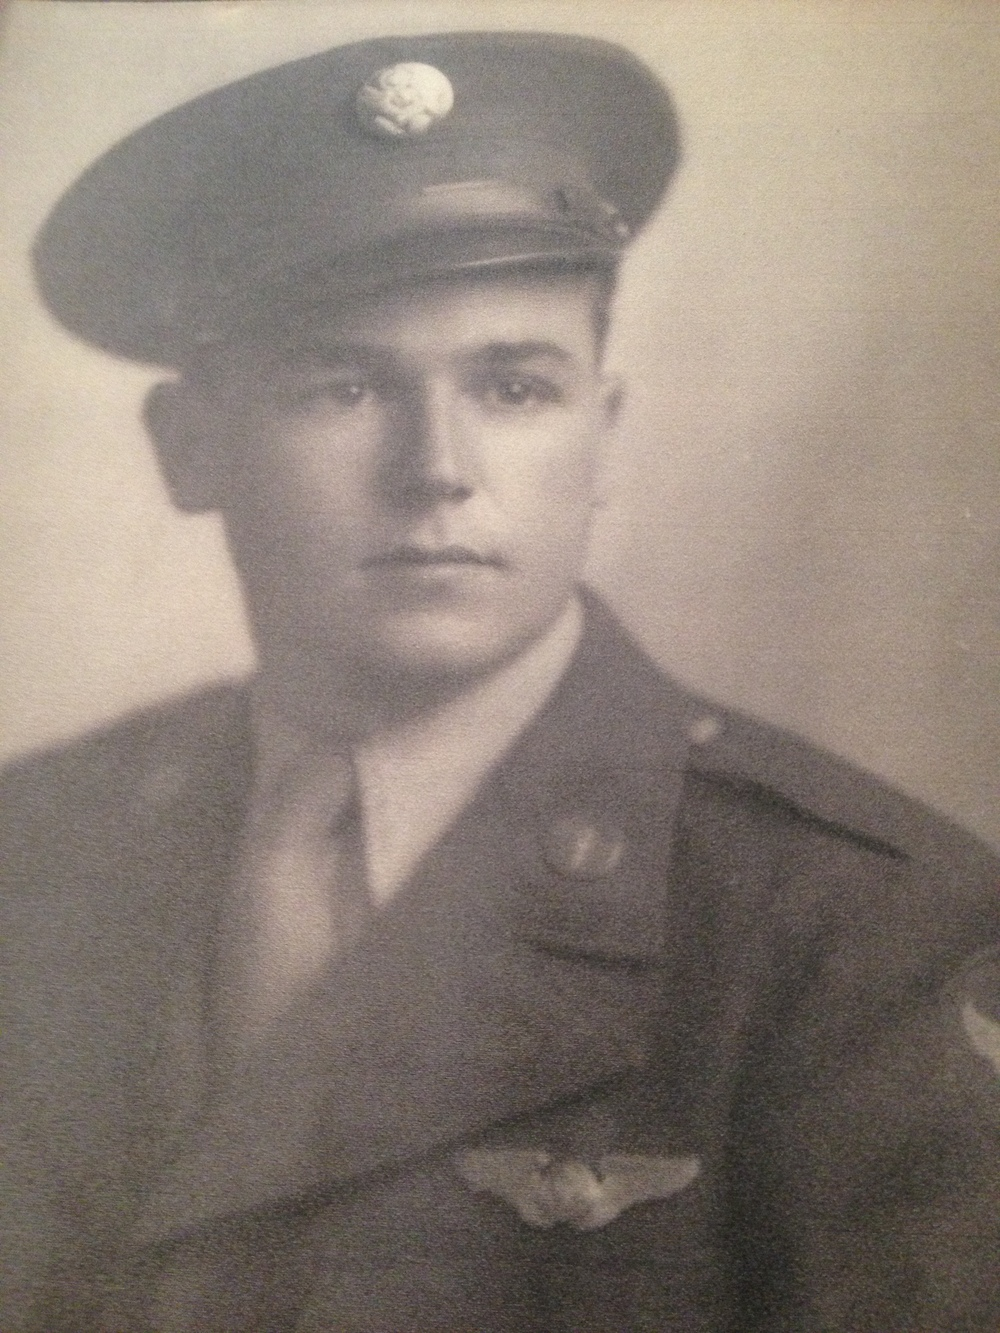 Staff Sergeant Bud Dunn.  Photo courtesy of Larry Dunn.